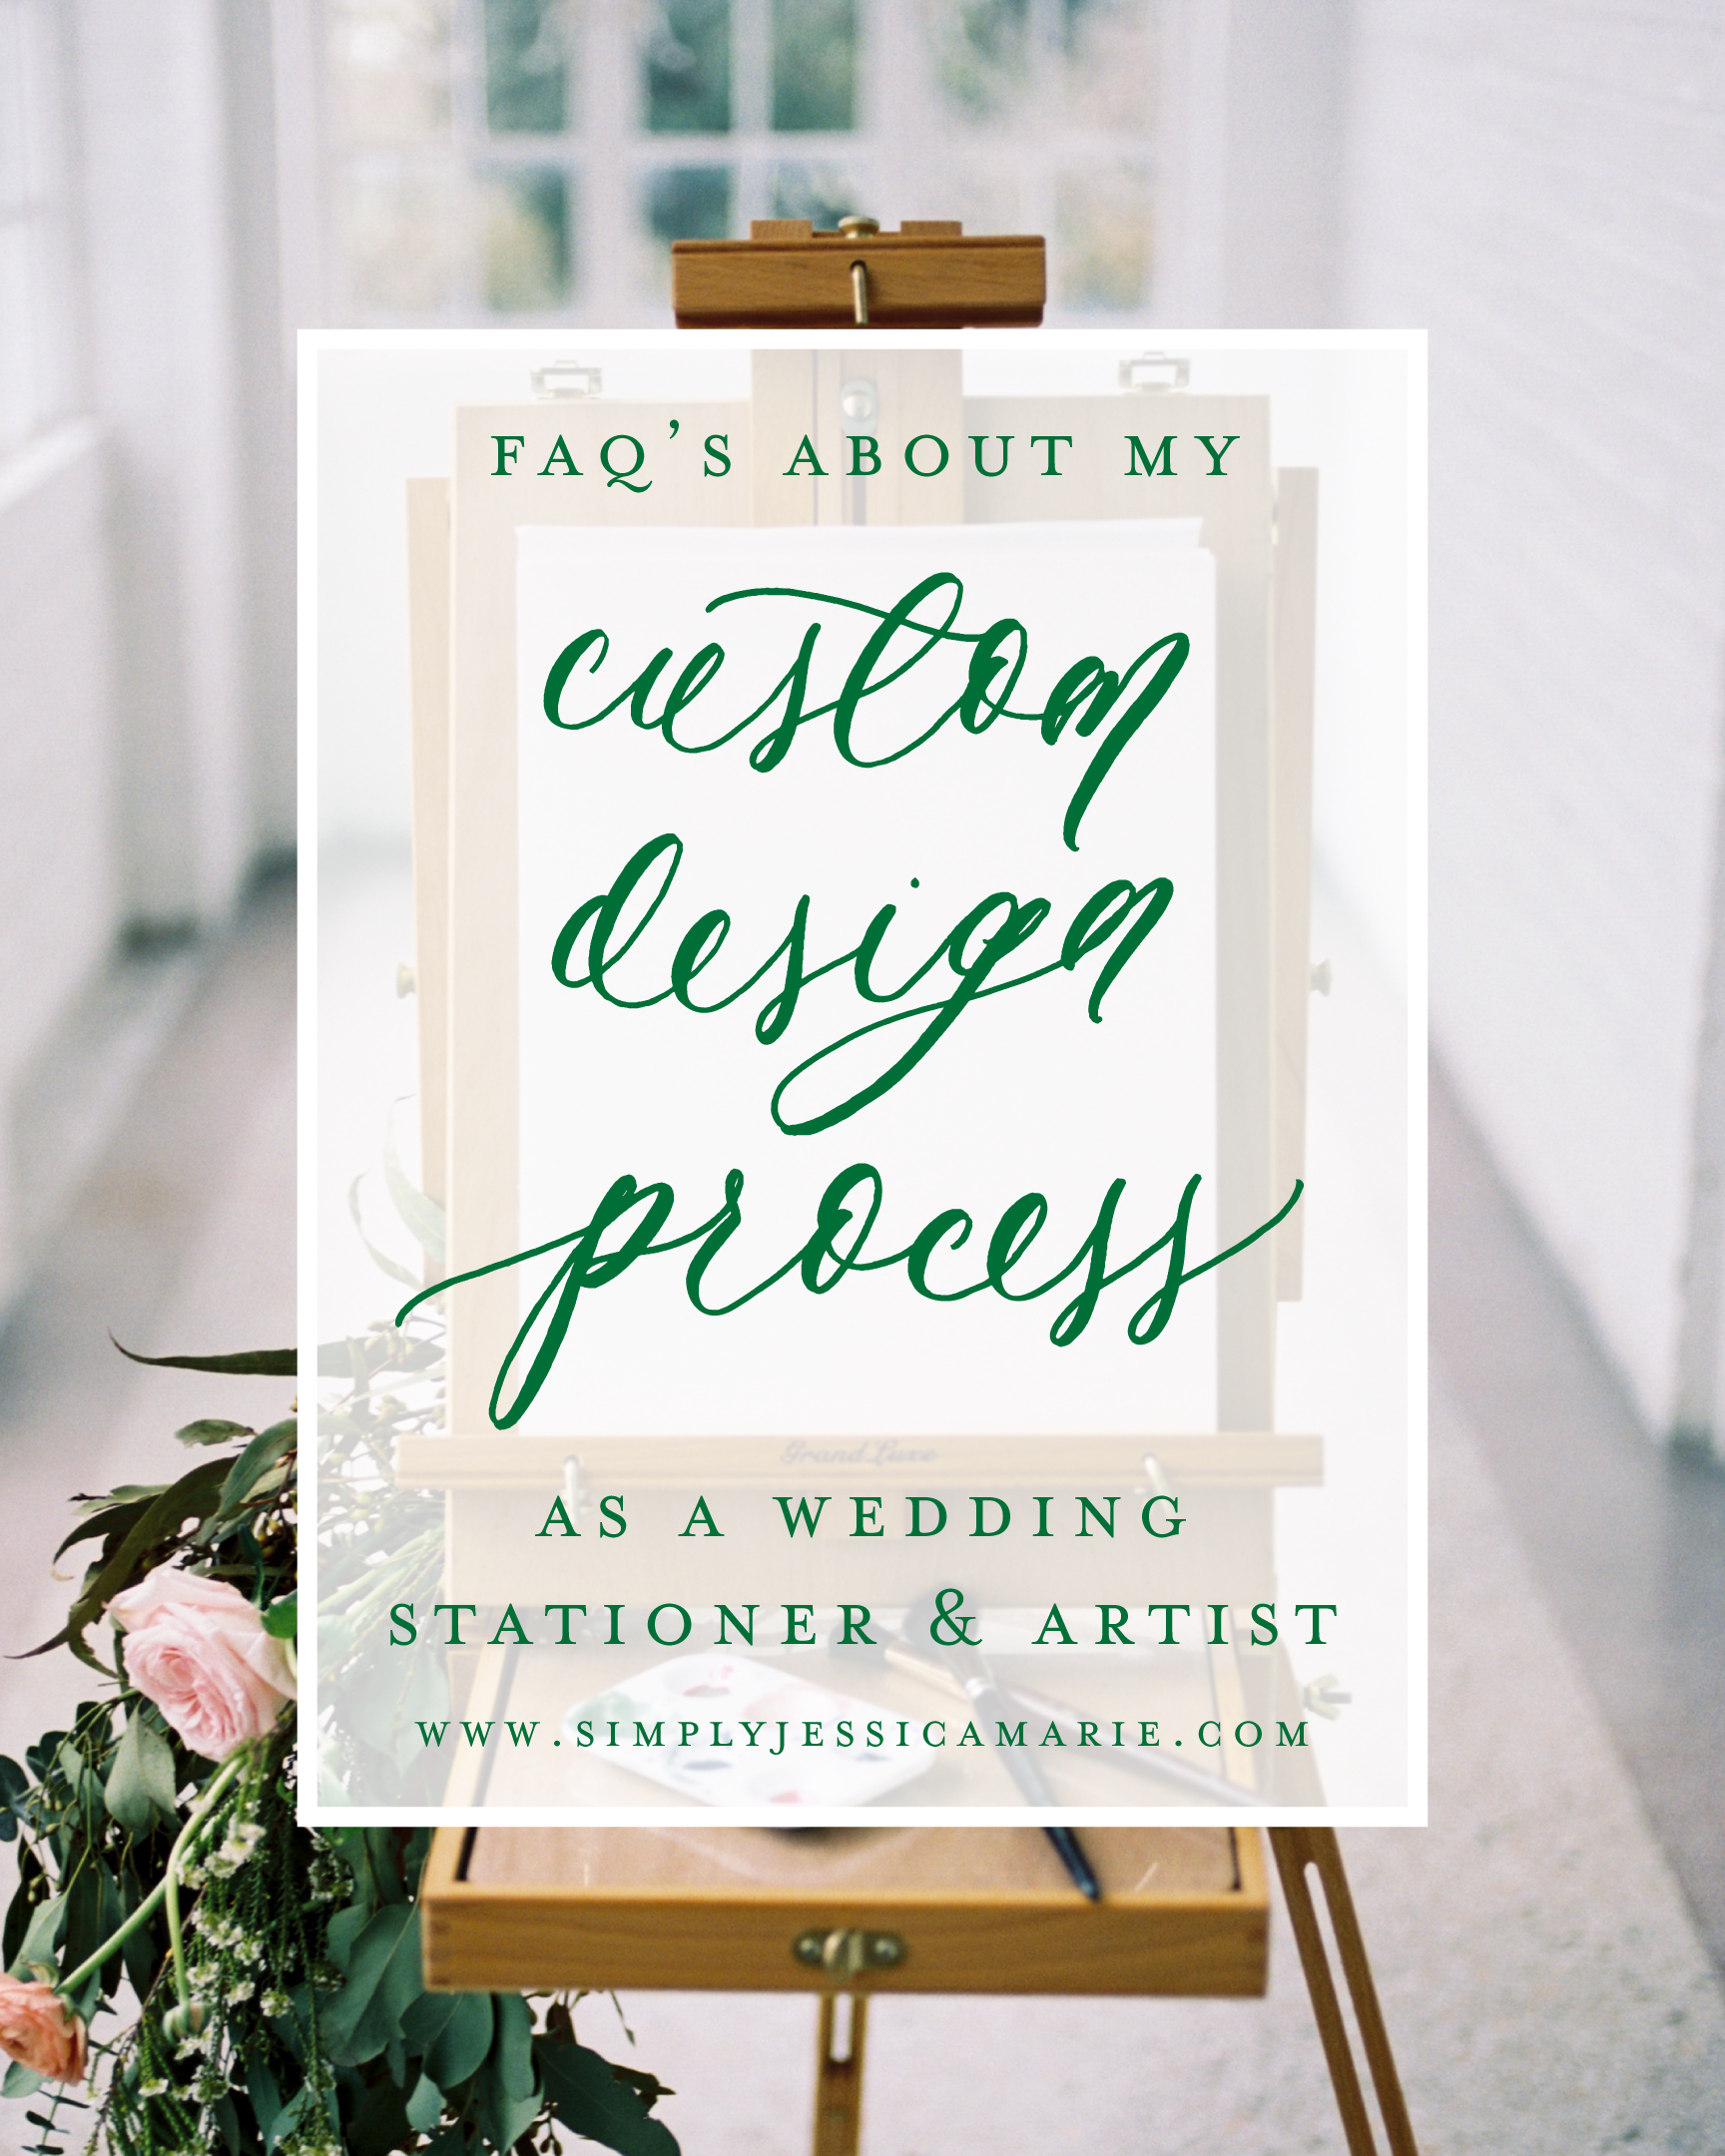 FAQ About My Custom Design Process as A Wedding Stationer and Artist by Simply Jessica Marie